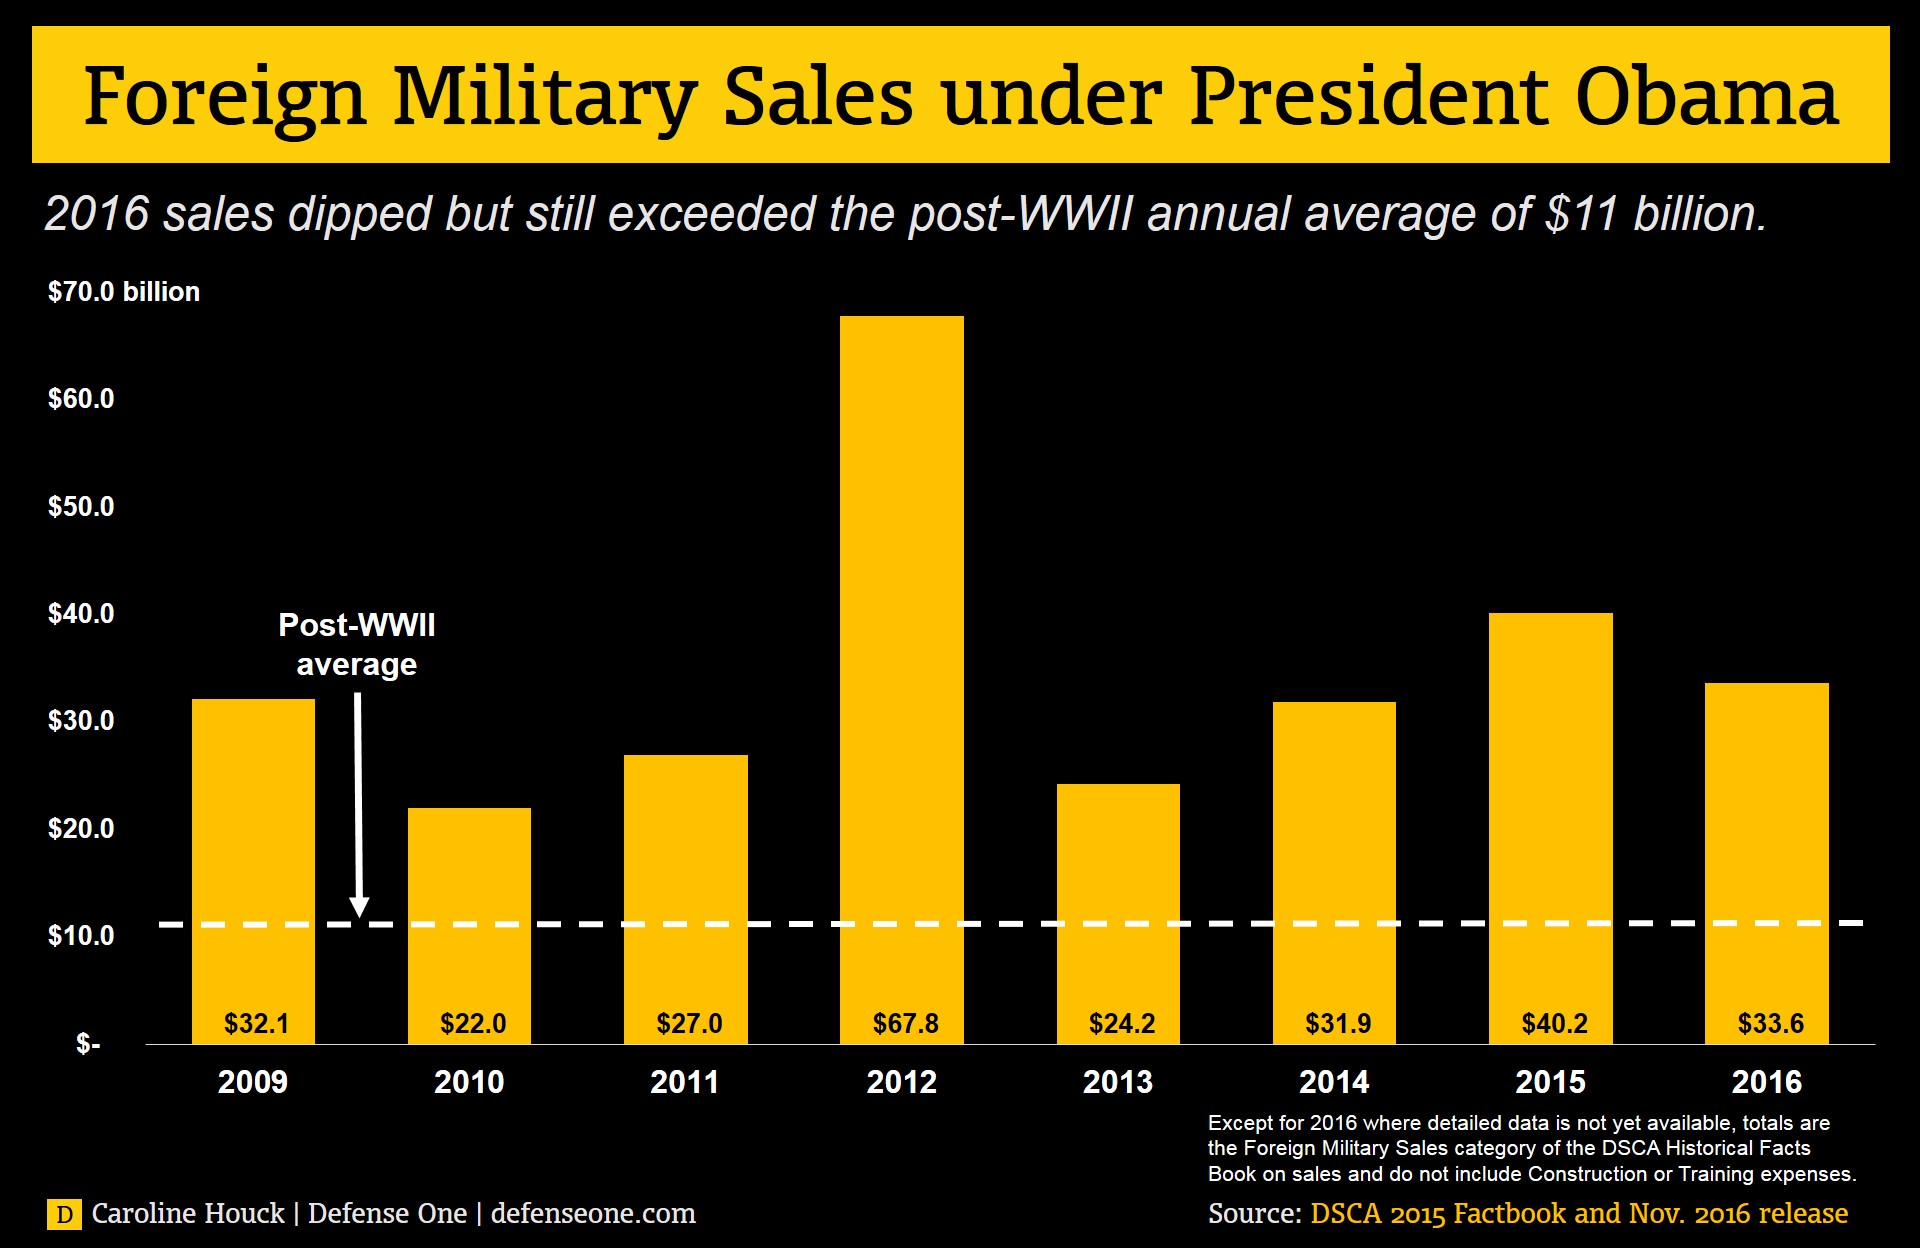 US Foreign Military Sales 3750730_original